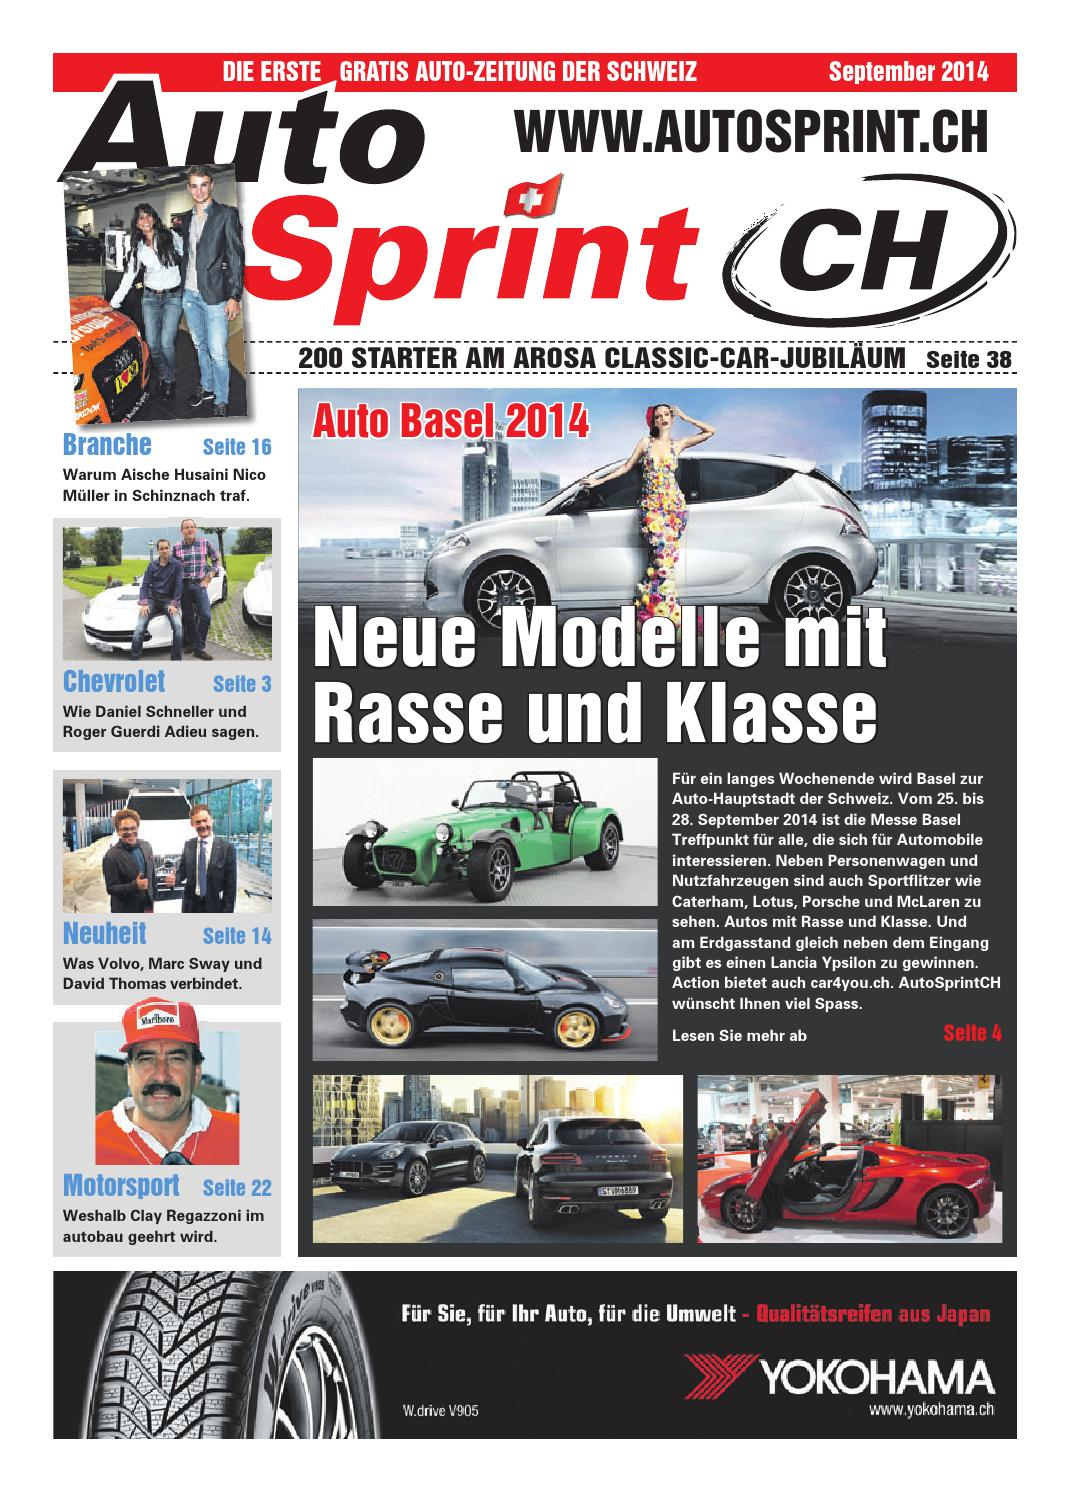 AutoSprintCH Ausgabe September 2014 by AutoSprintCH issuu